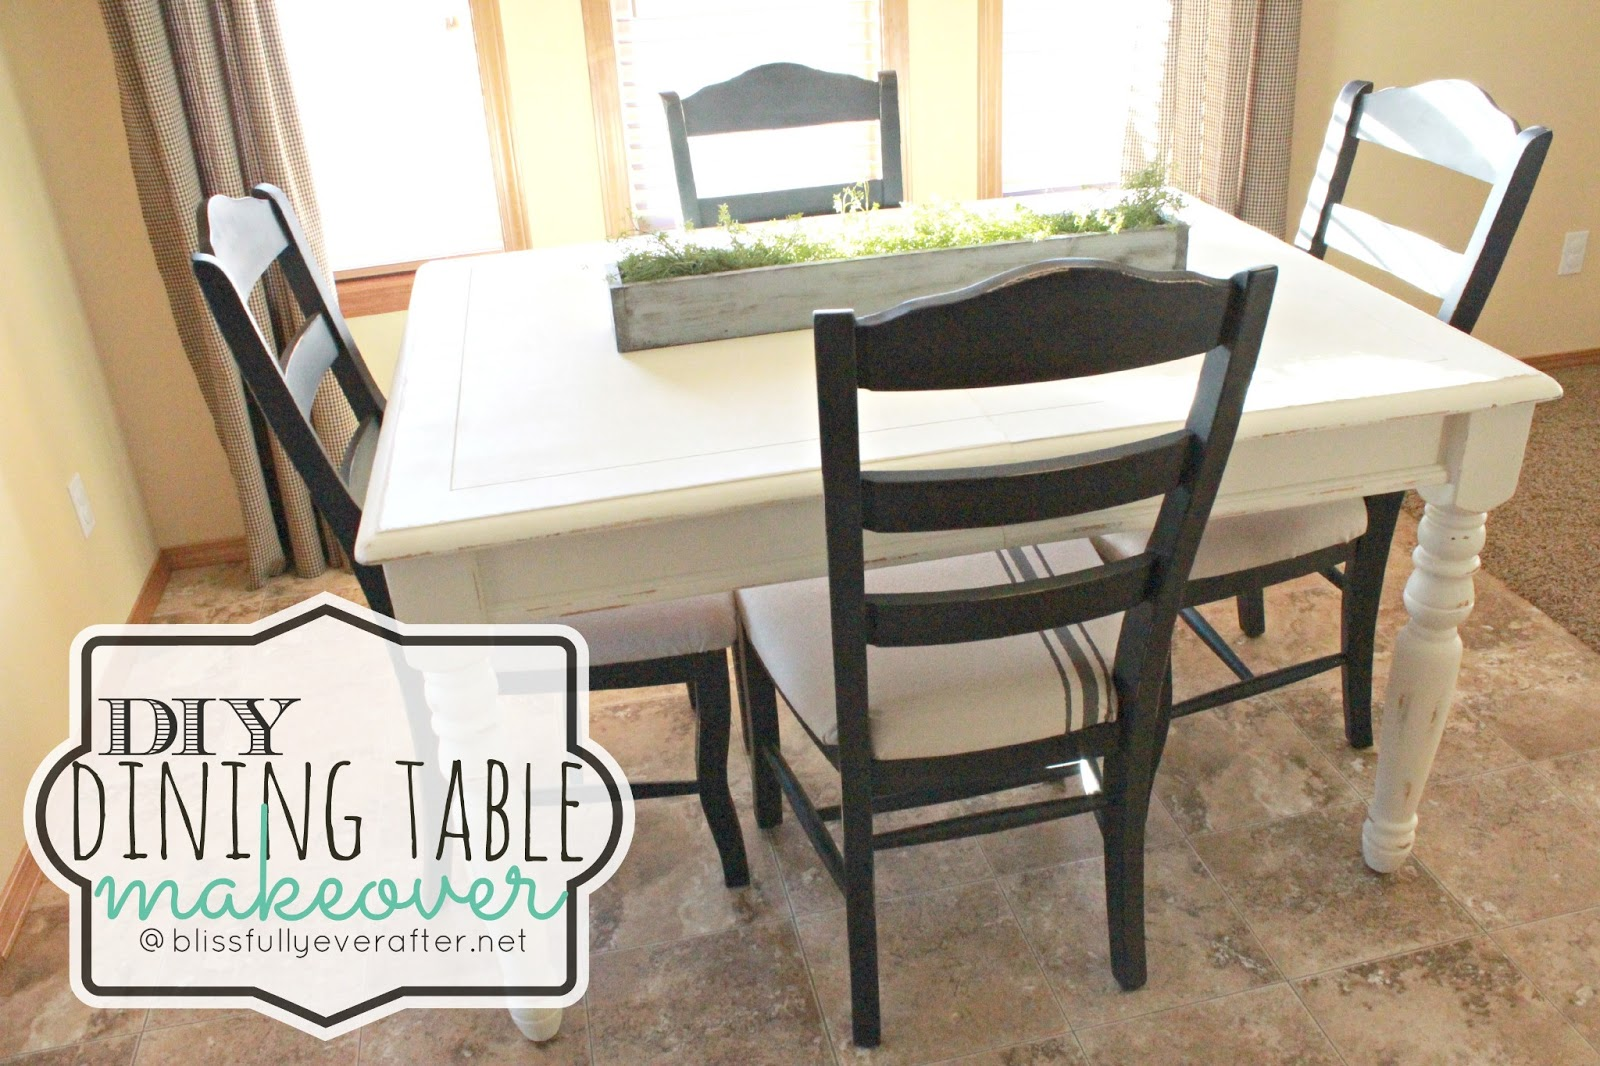 Diy Reclaimed Wood Dining Table Small Home Love Ask Home